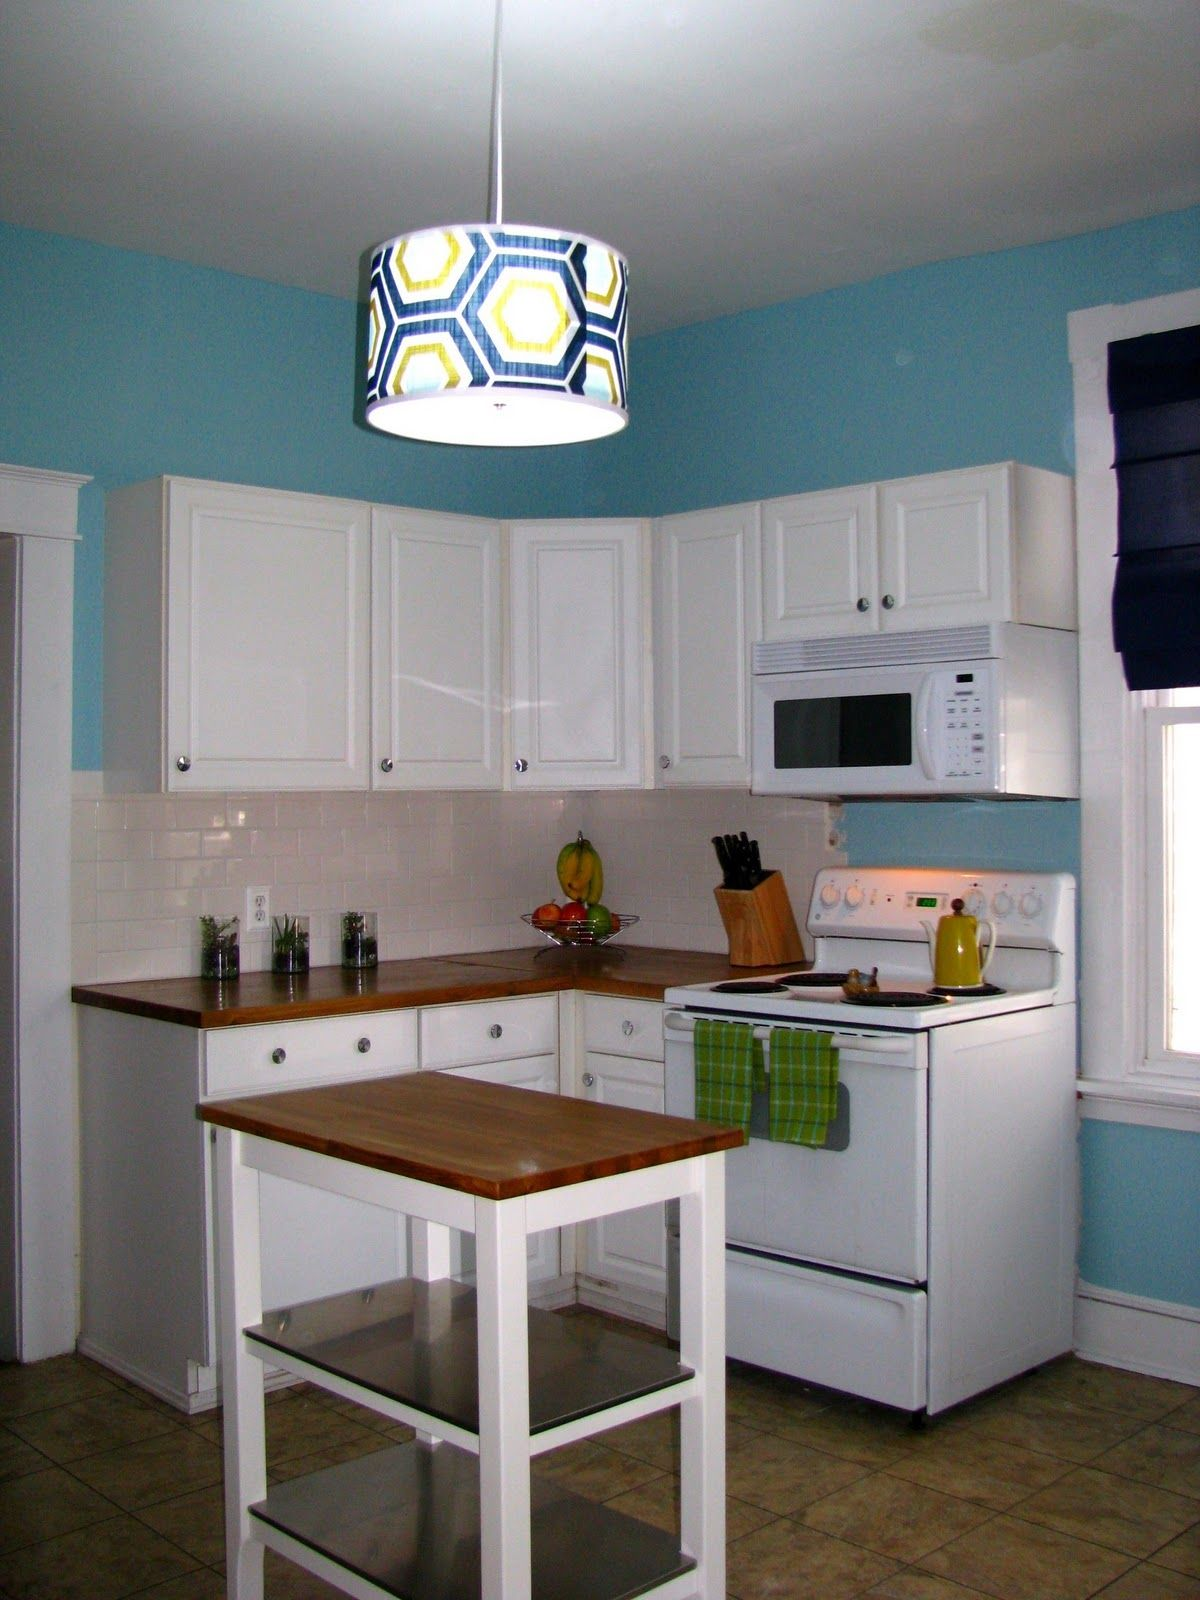 Remodel Kitchen On The Cheap Definitely A Interesting Findsee A Fascinating Designing My Kitchen Decorating Design